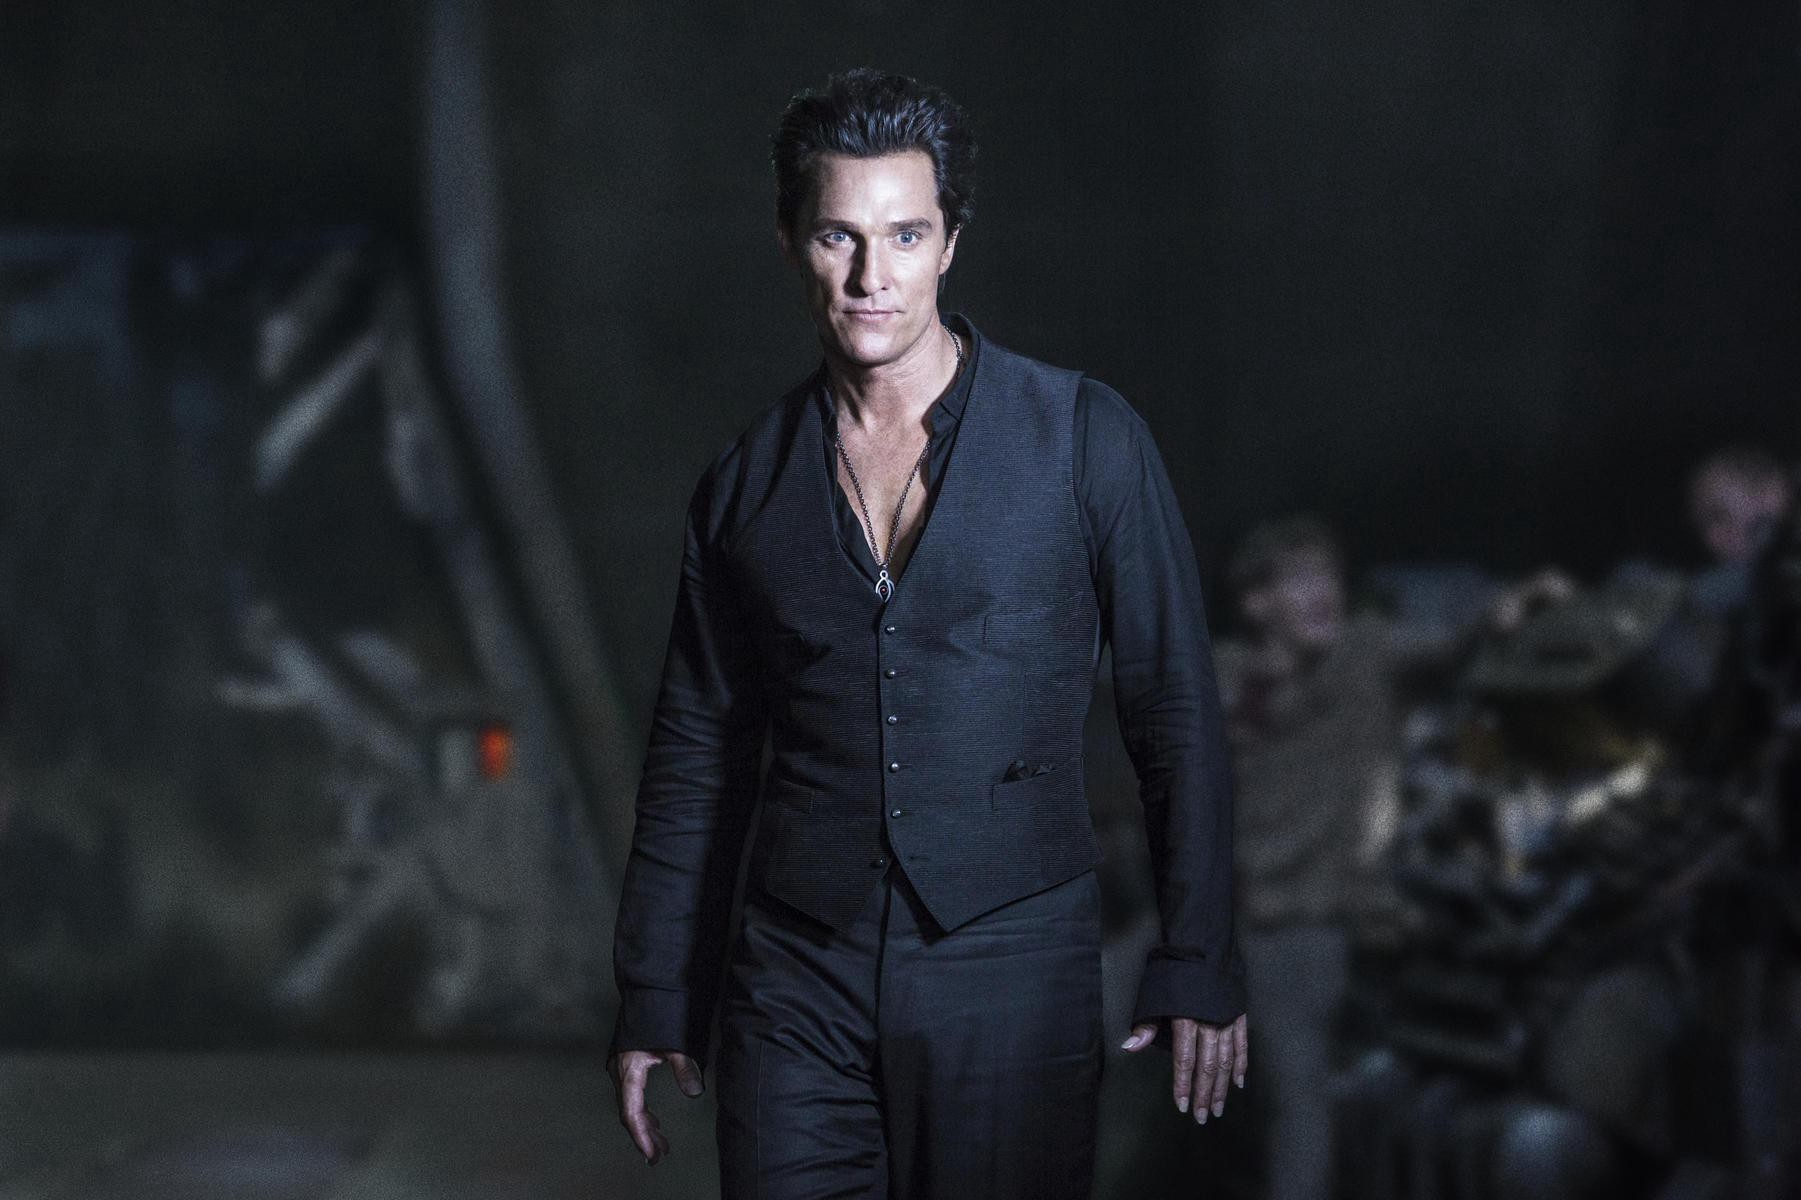 Matthew McConaughey as Walter Padick, The Man in Black in The Dark Tower (2017)